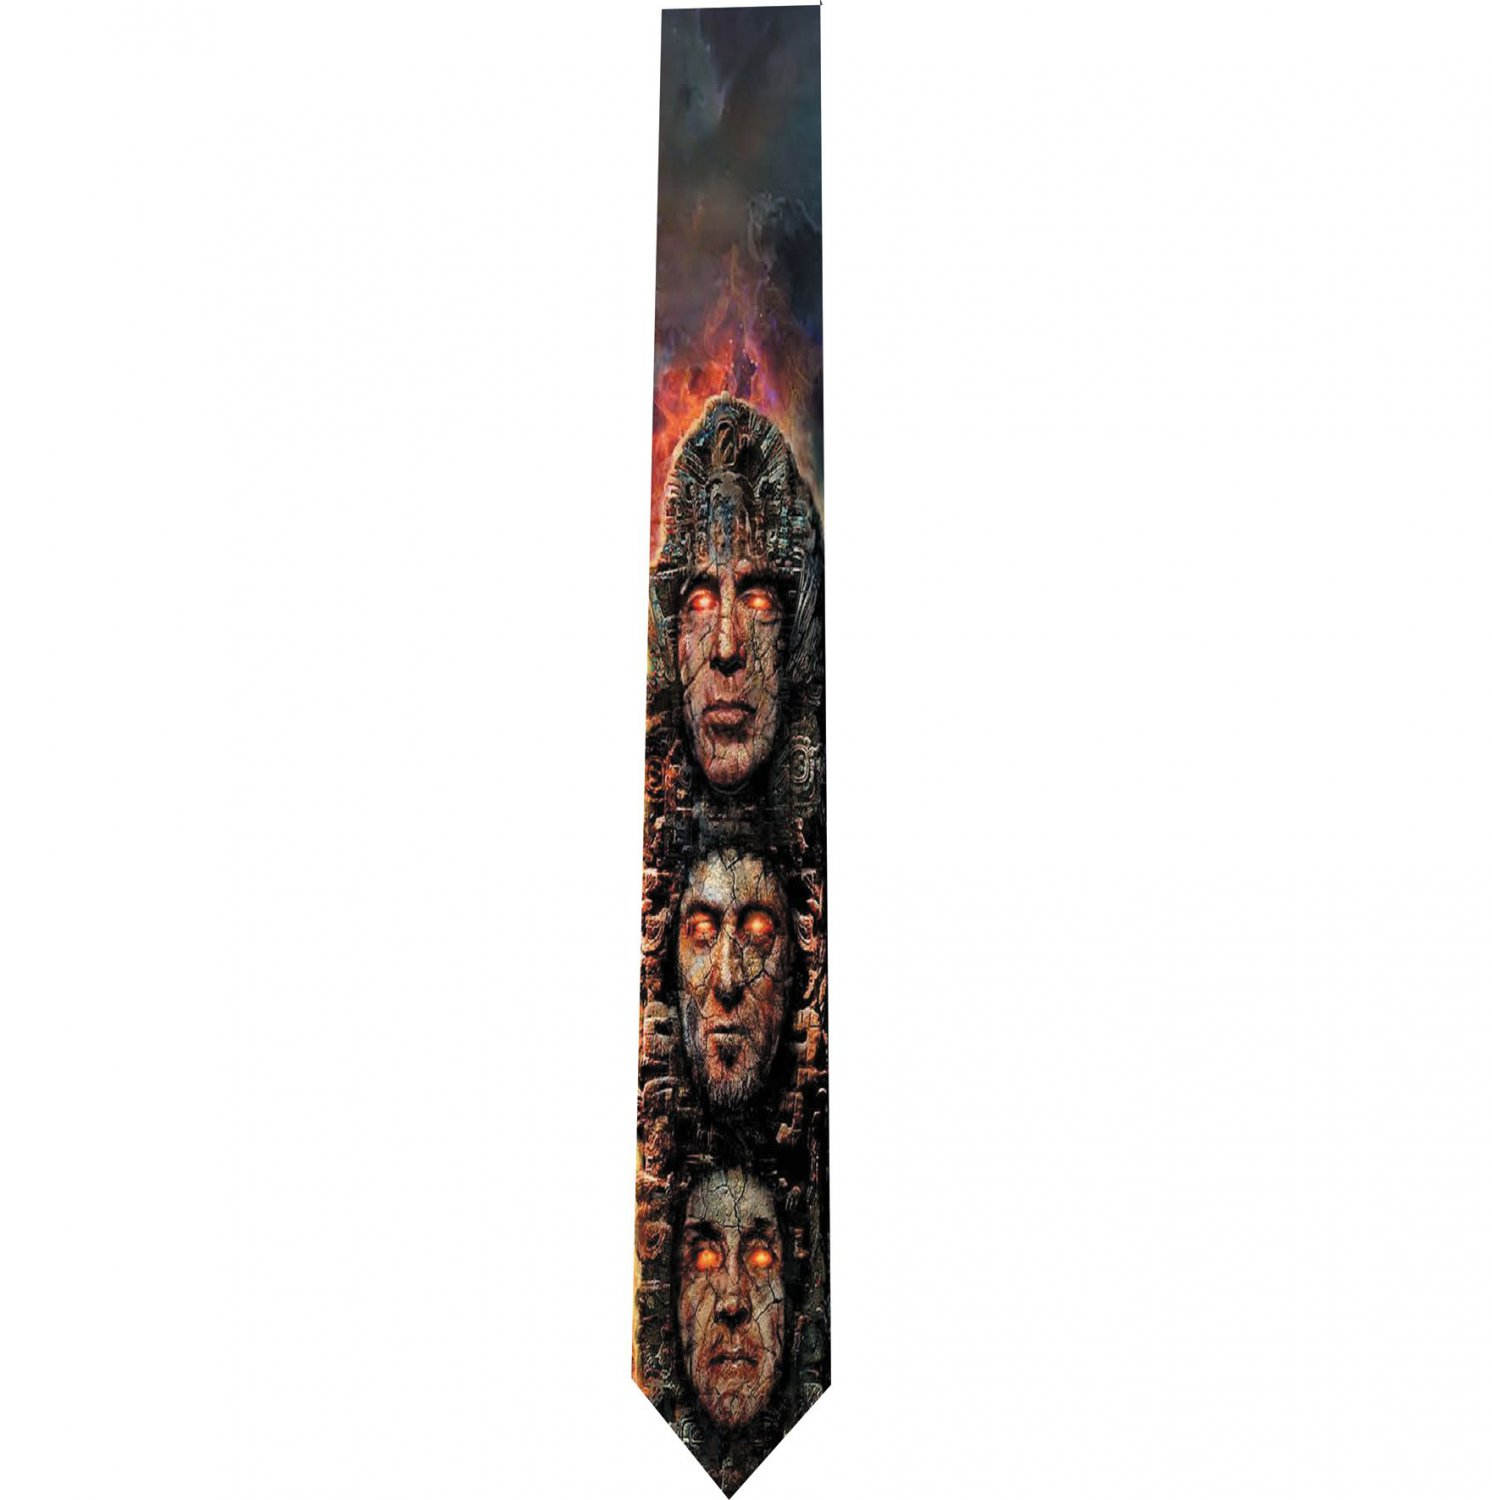 Iron Maiden Tie - Model 2